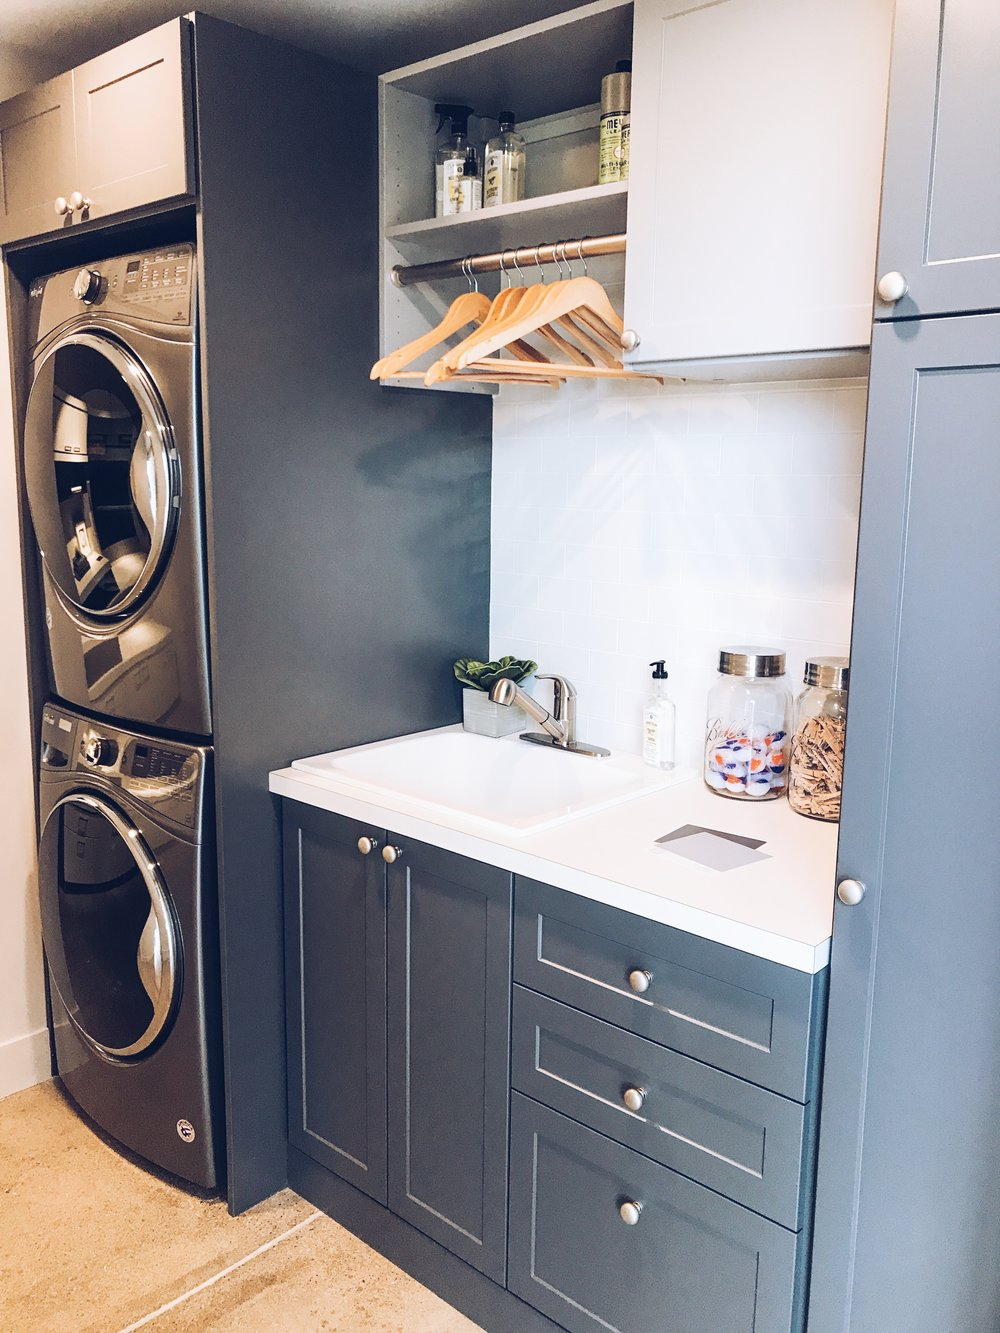 Laundry Room Organization from Inspired Closets